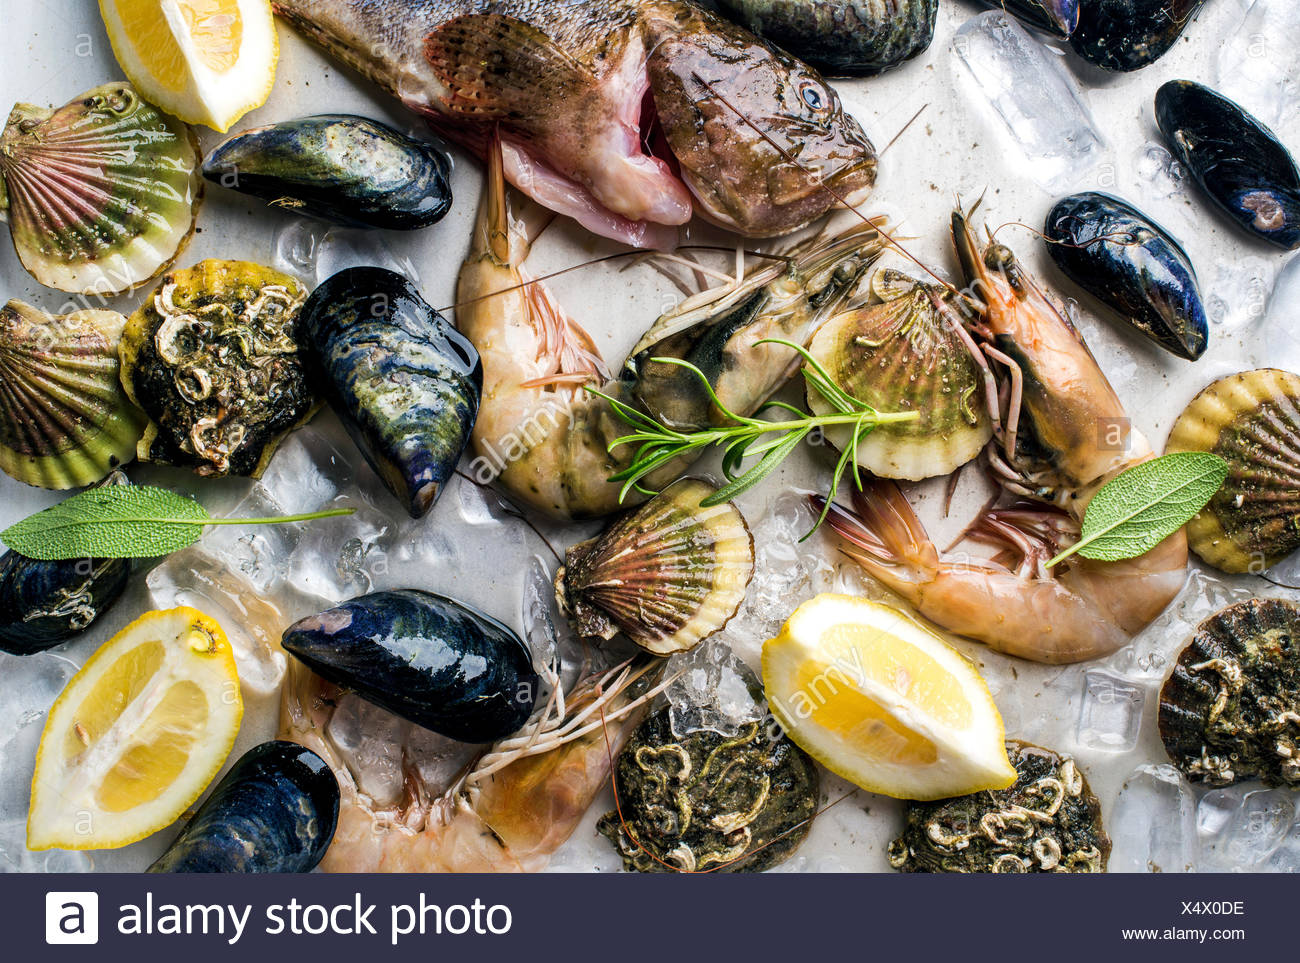 Fresh seafood with herbs and lemon slices on ice. Prawns, fish, mussels and scallops over steel metal background, top view - Stock Image